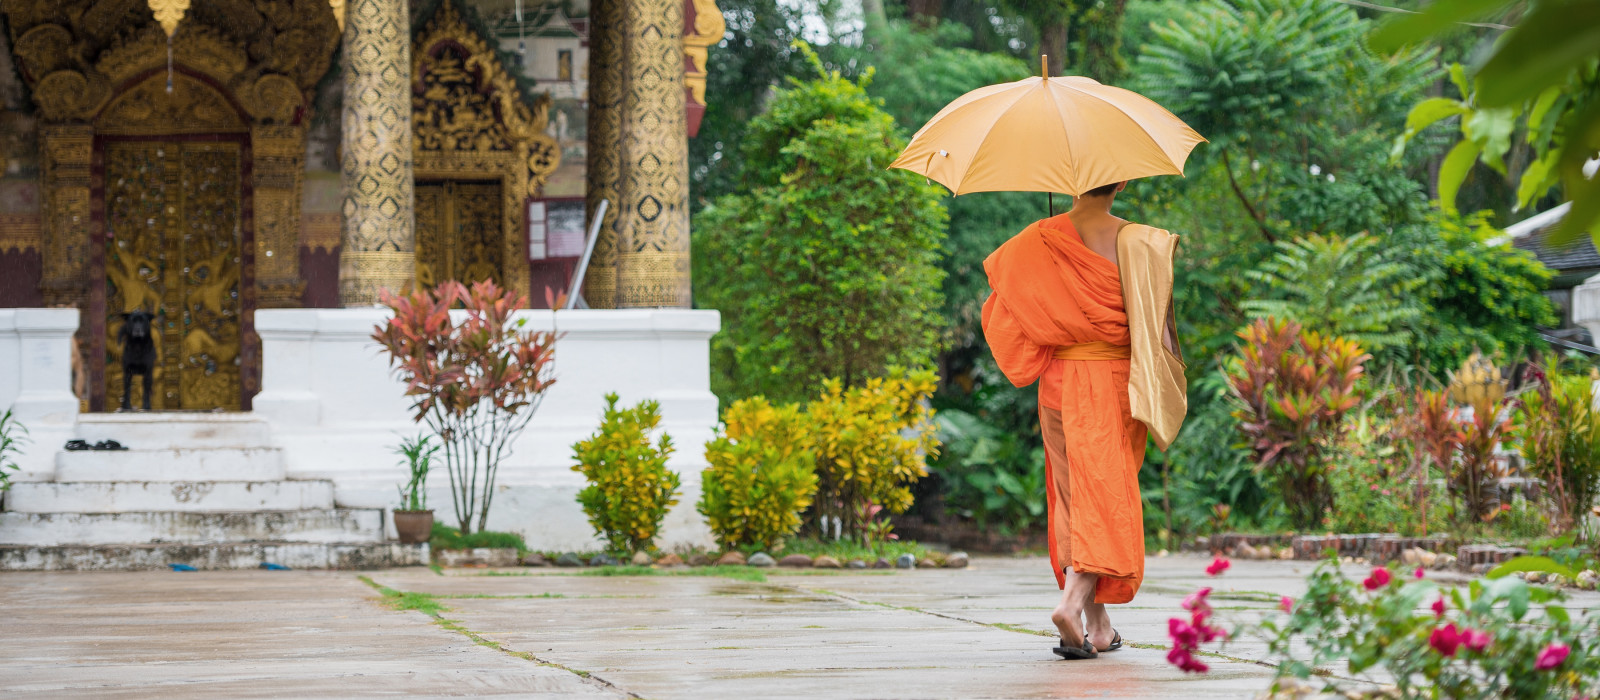 Monk with an umbrella on a city street, Louangphabang, Laos, Asia